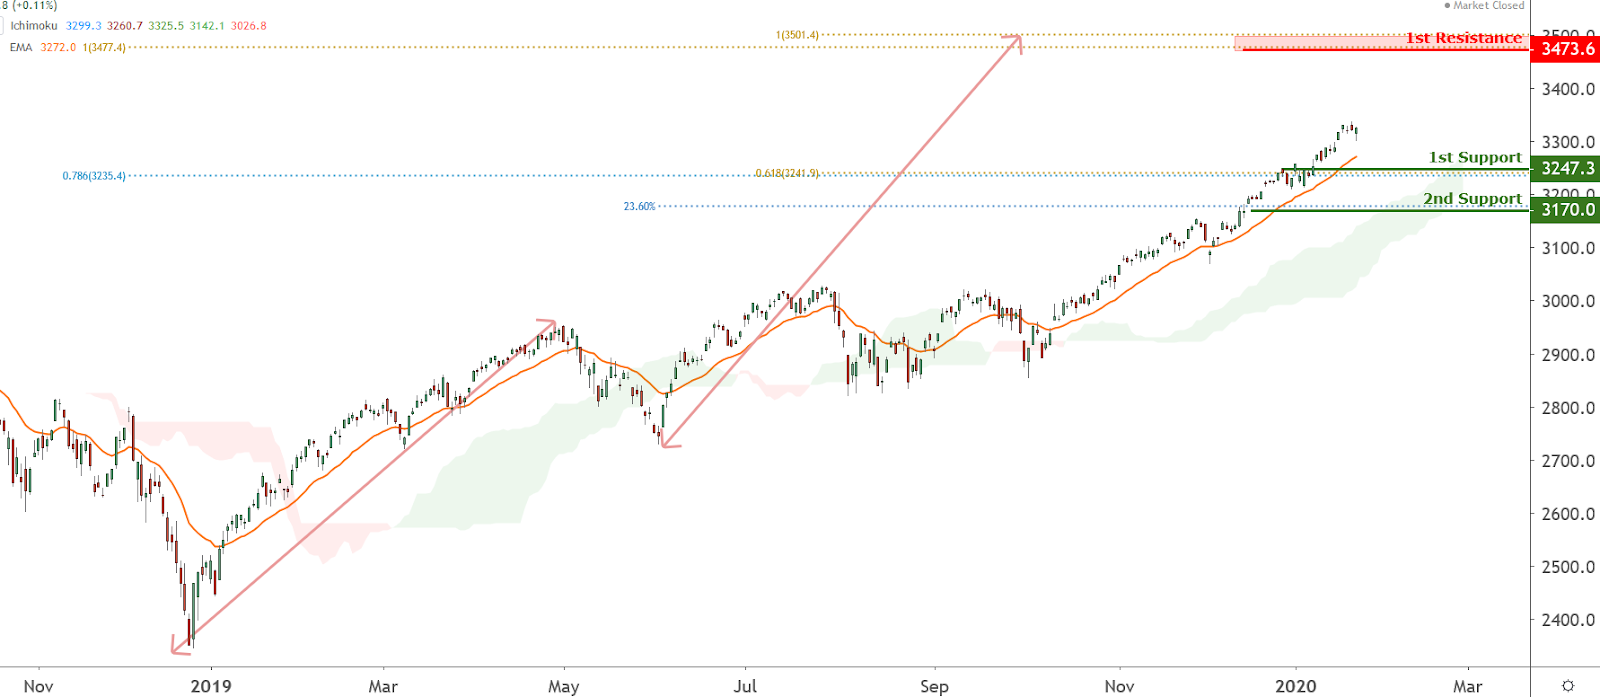 SPX Chart, Source: TradingView.com